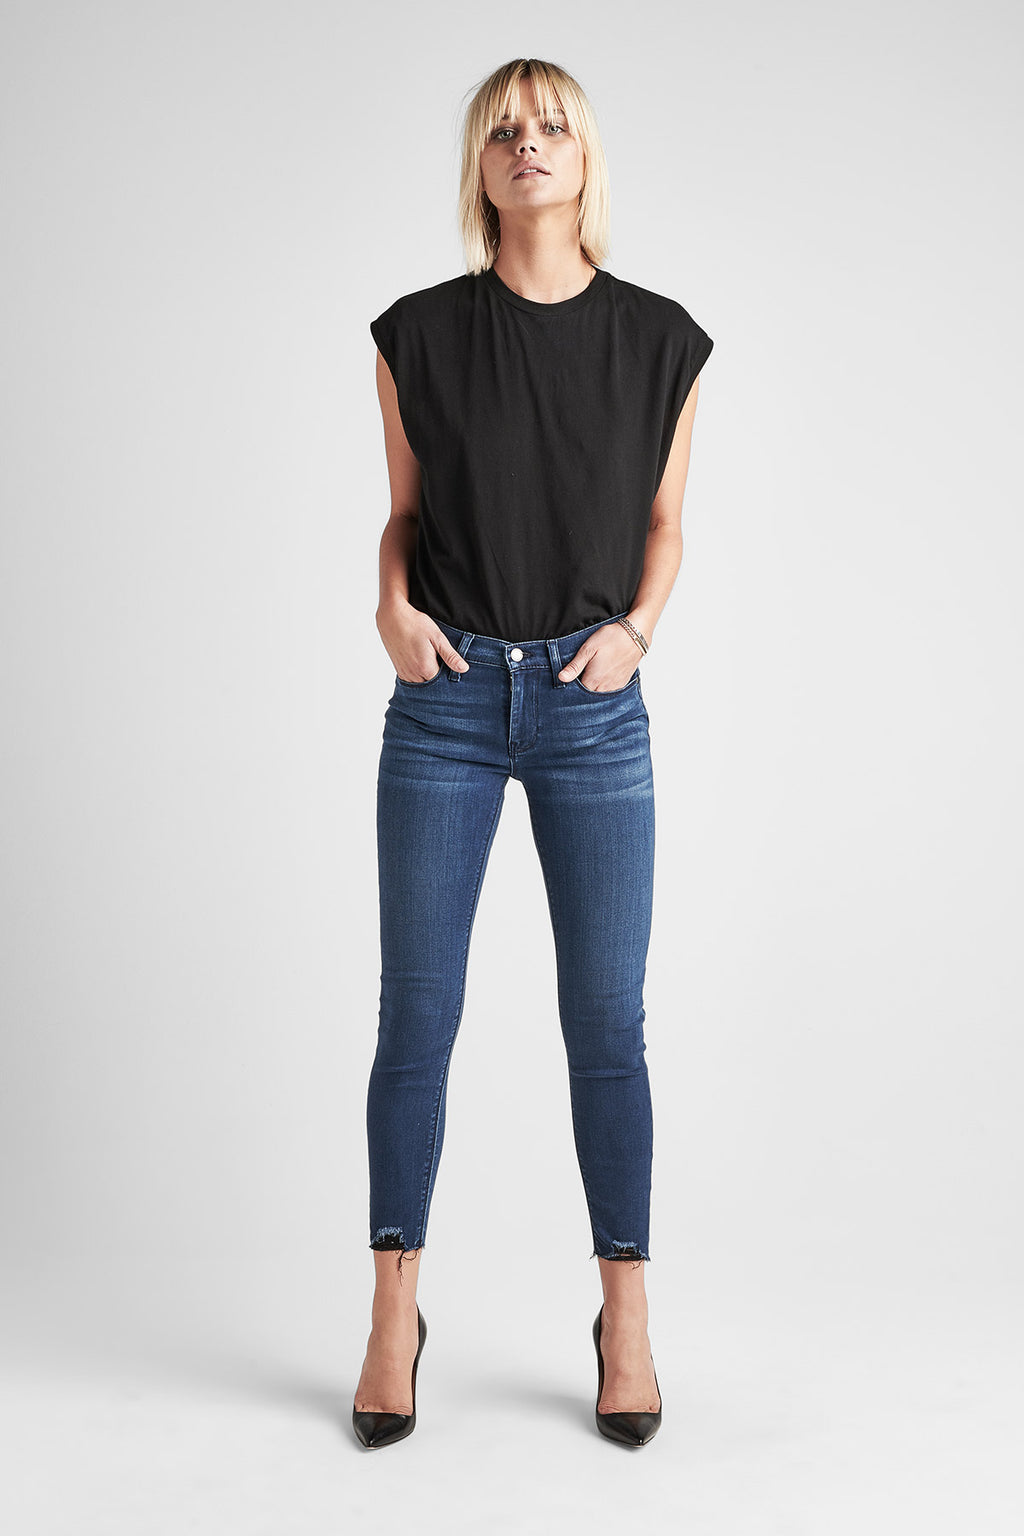 NICO MIDRISE SUPER SKINNY ANKLE JEAN - THREE DIAMOND - Image 1